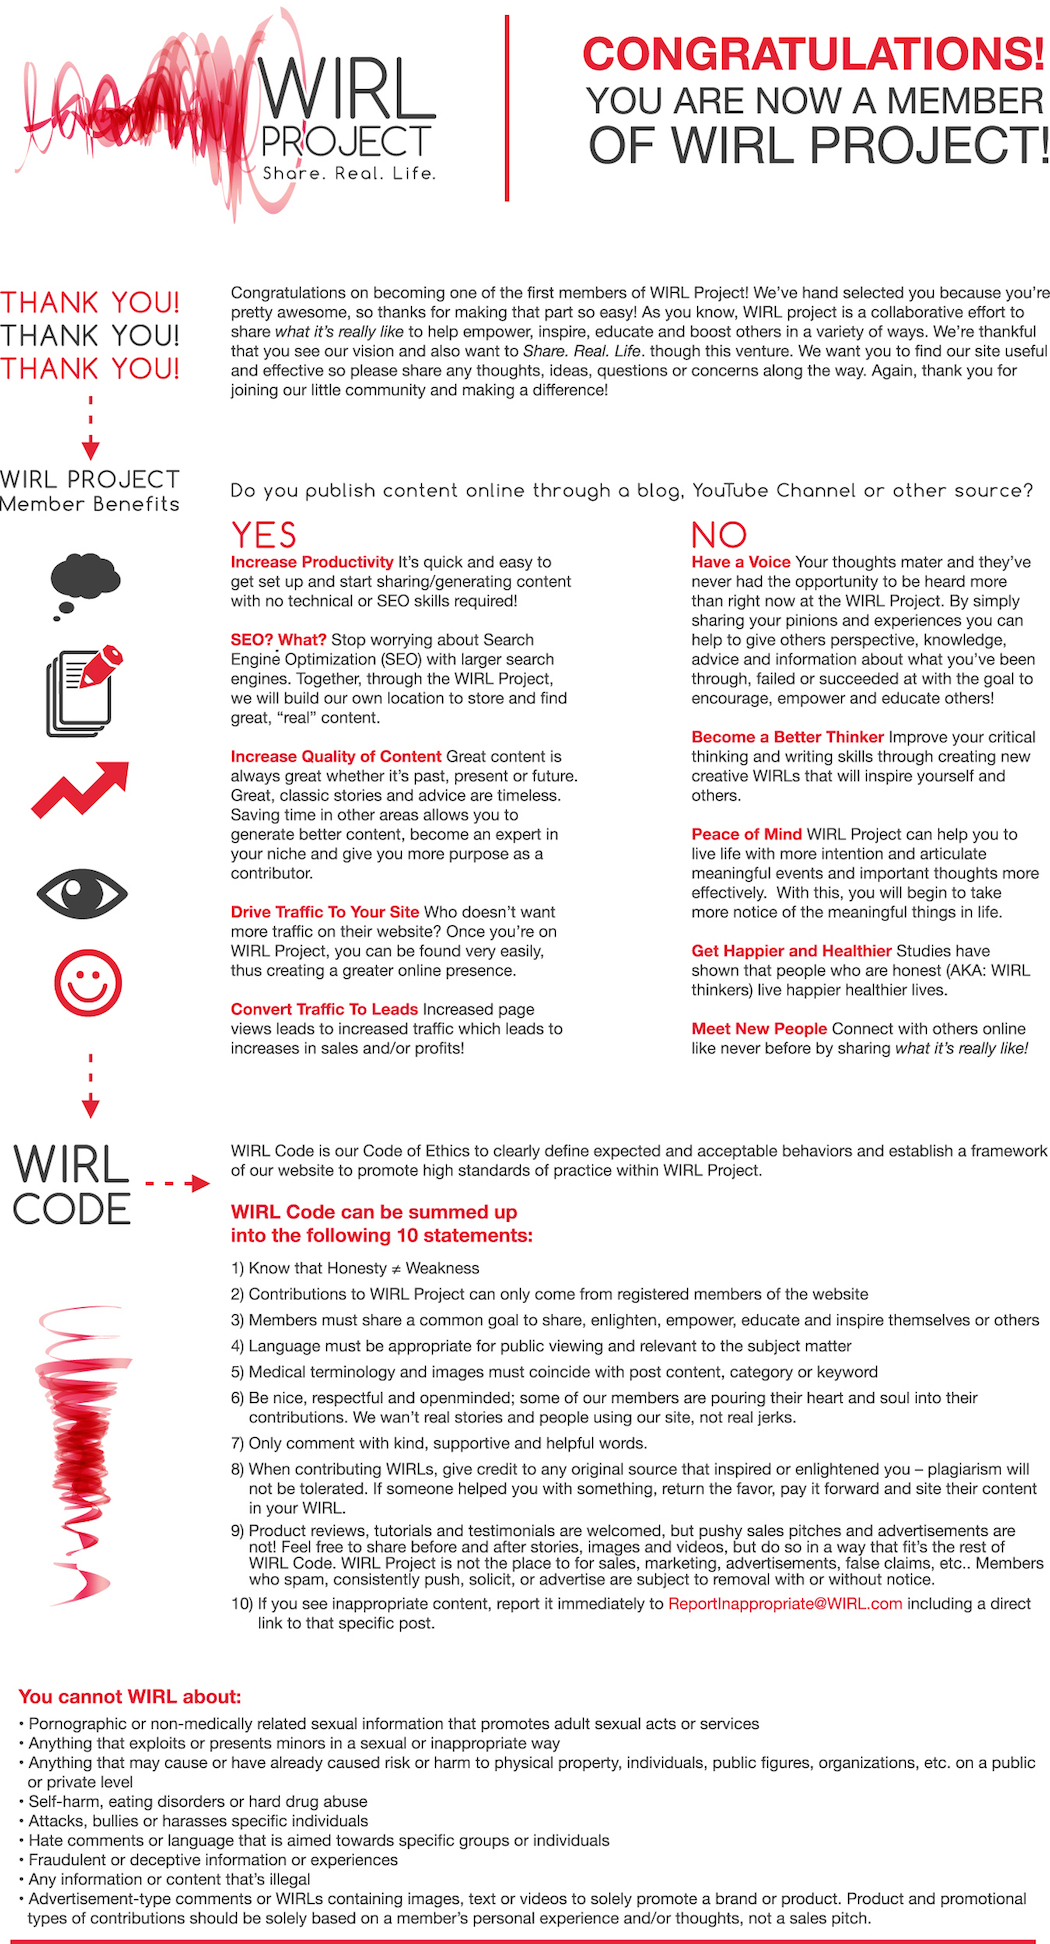 WIRL Project Member Infographic